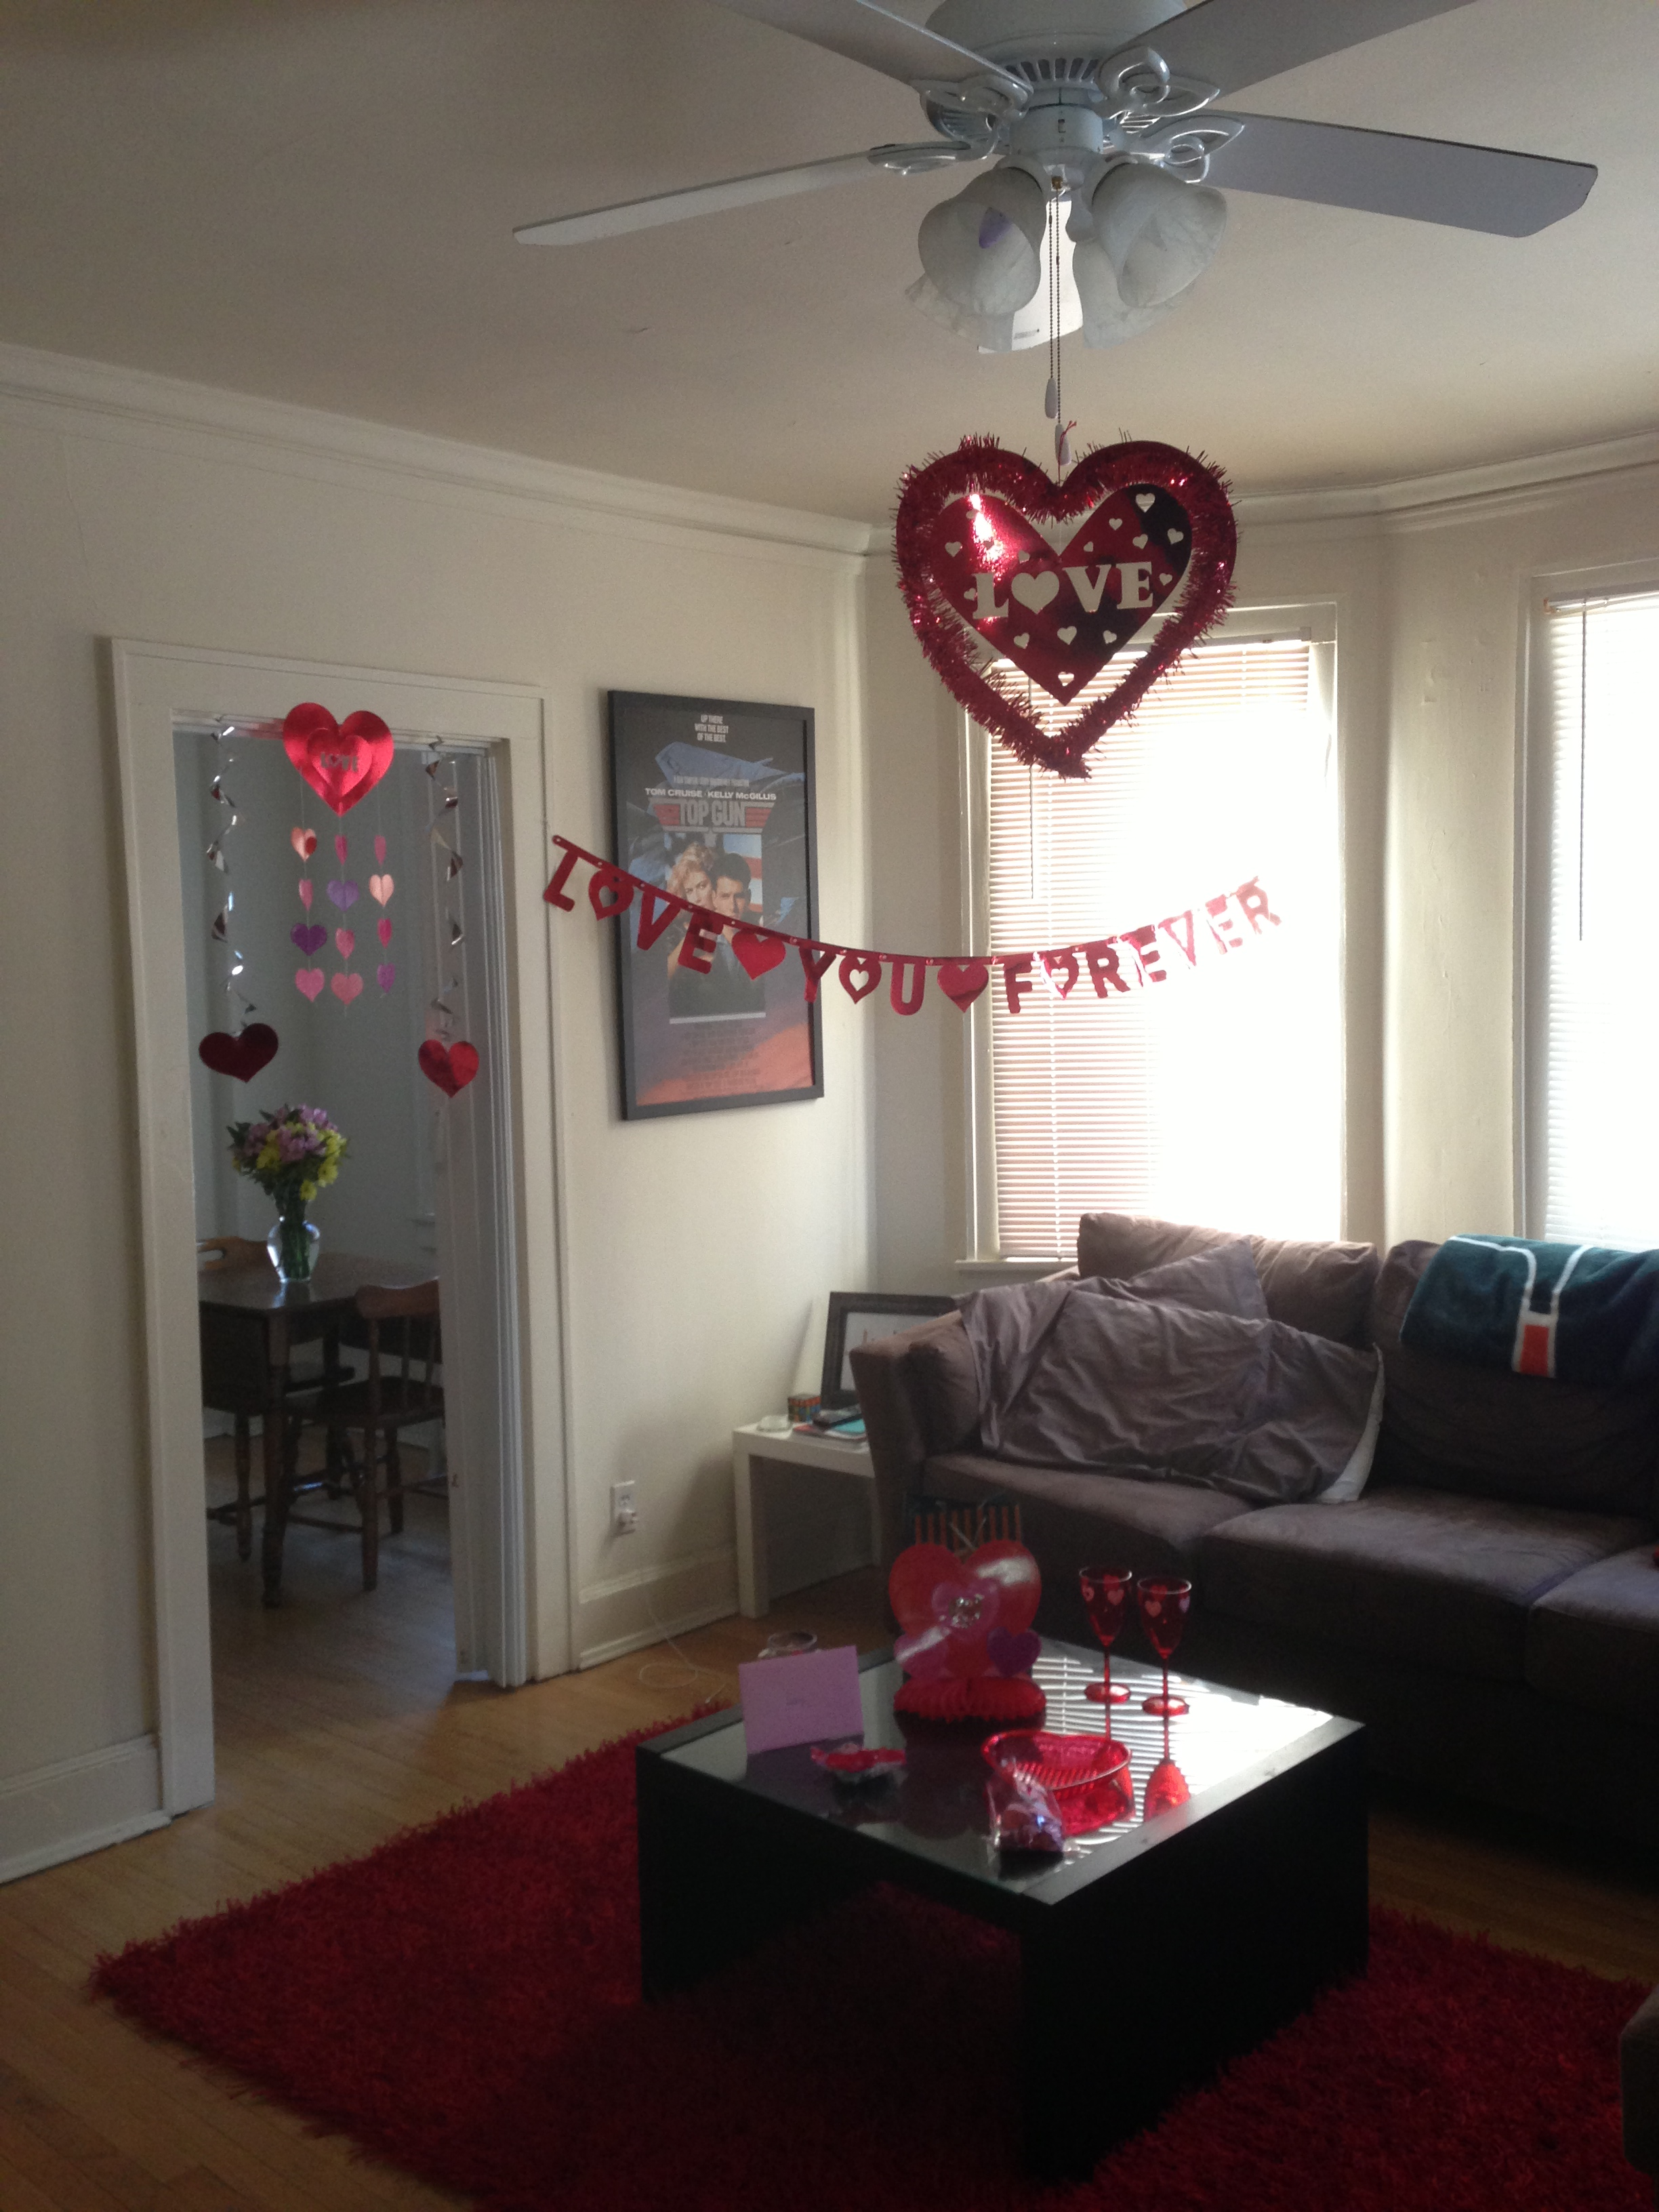 Valentines day decorations the majestic vision for Valentine s day room decor